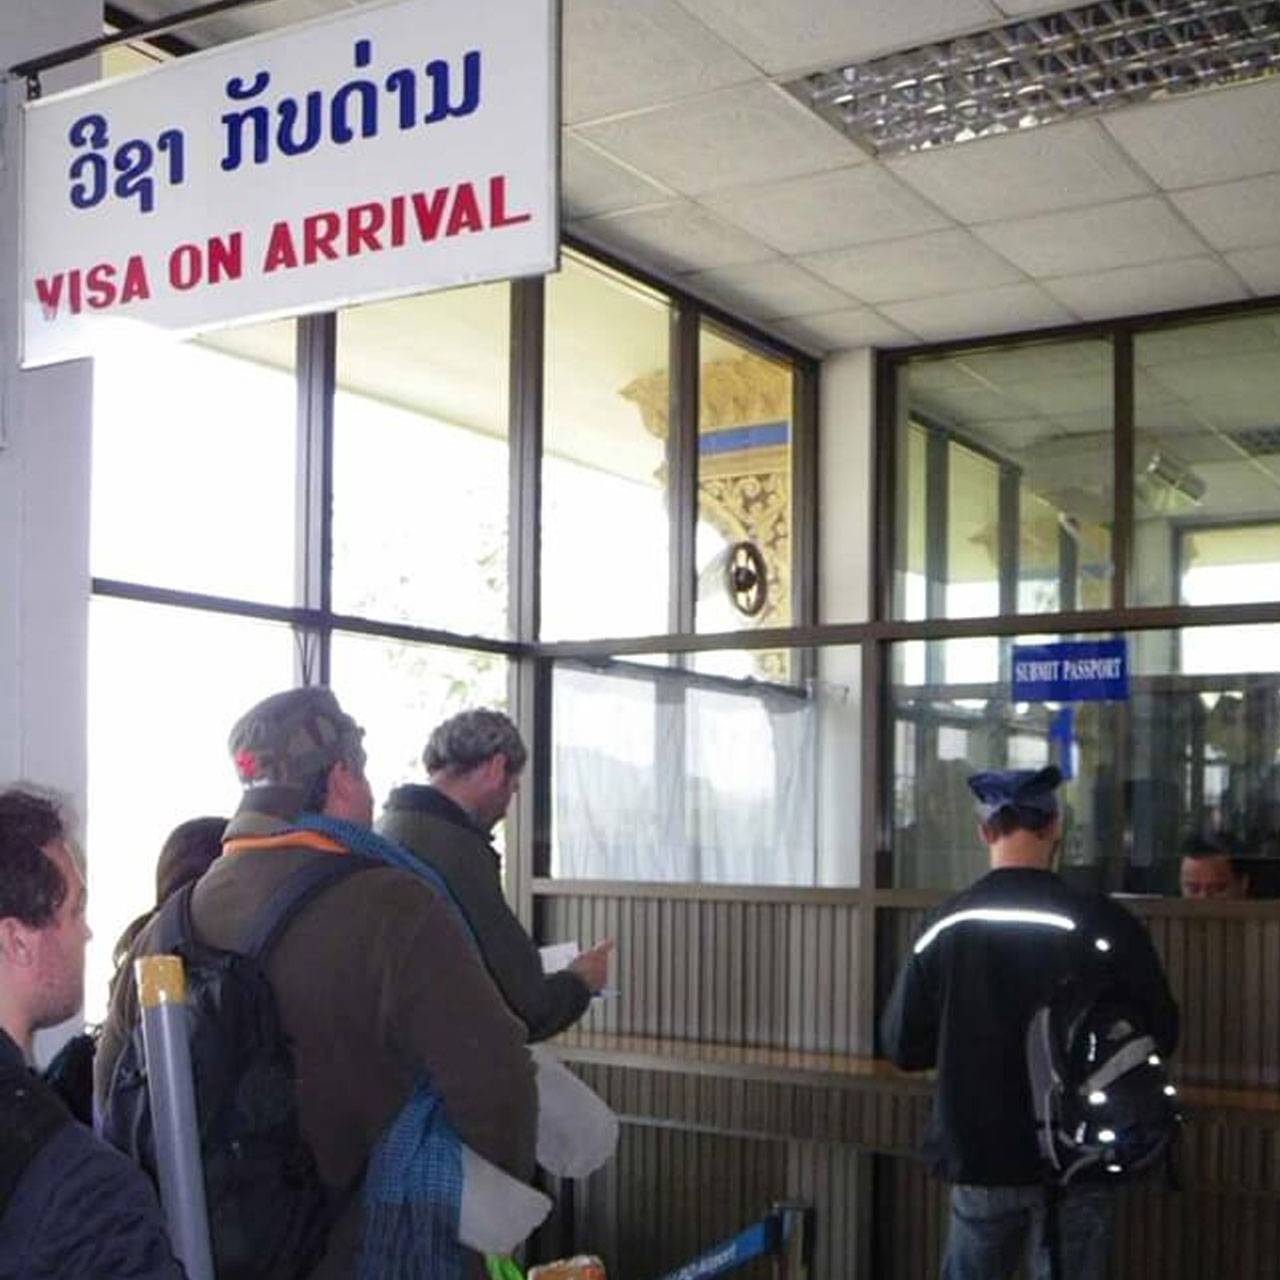 Visa on arrival counter at Luang Prabang International Airport